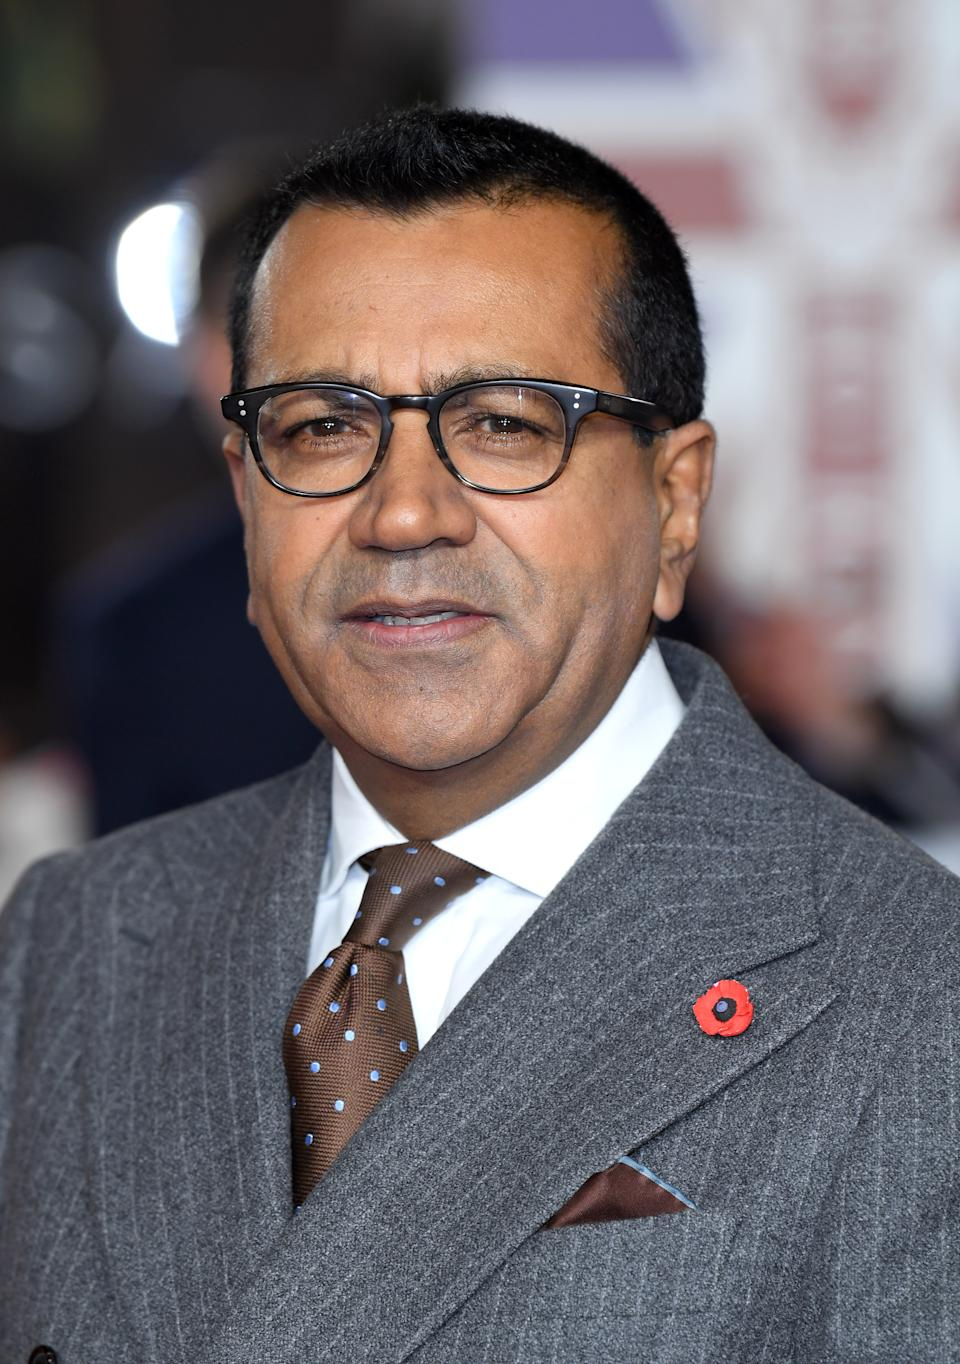 LONDON, ENGLAND - OCTOBER 28: Martin Bashir attends the Pride Of Britain Awards 2019 at The Grosvenor House Hotel on October 28, 2019 in London, England. (Photo by Karwai Tang/WireImage)